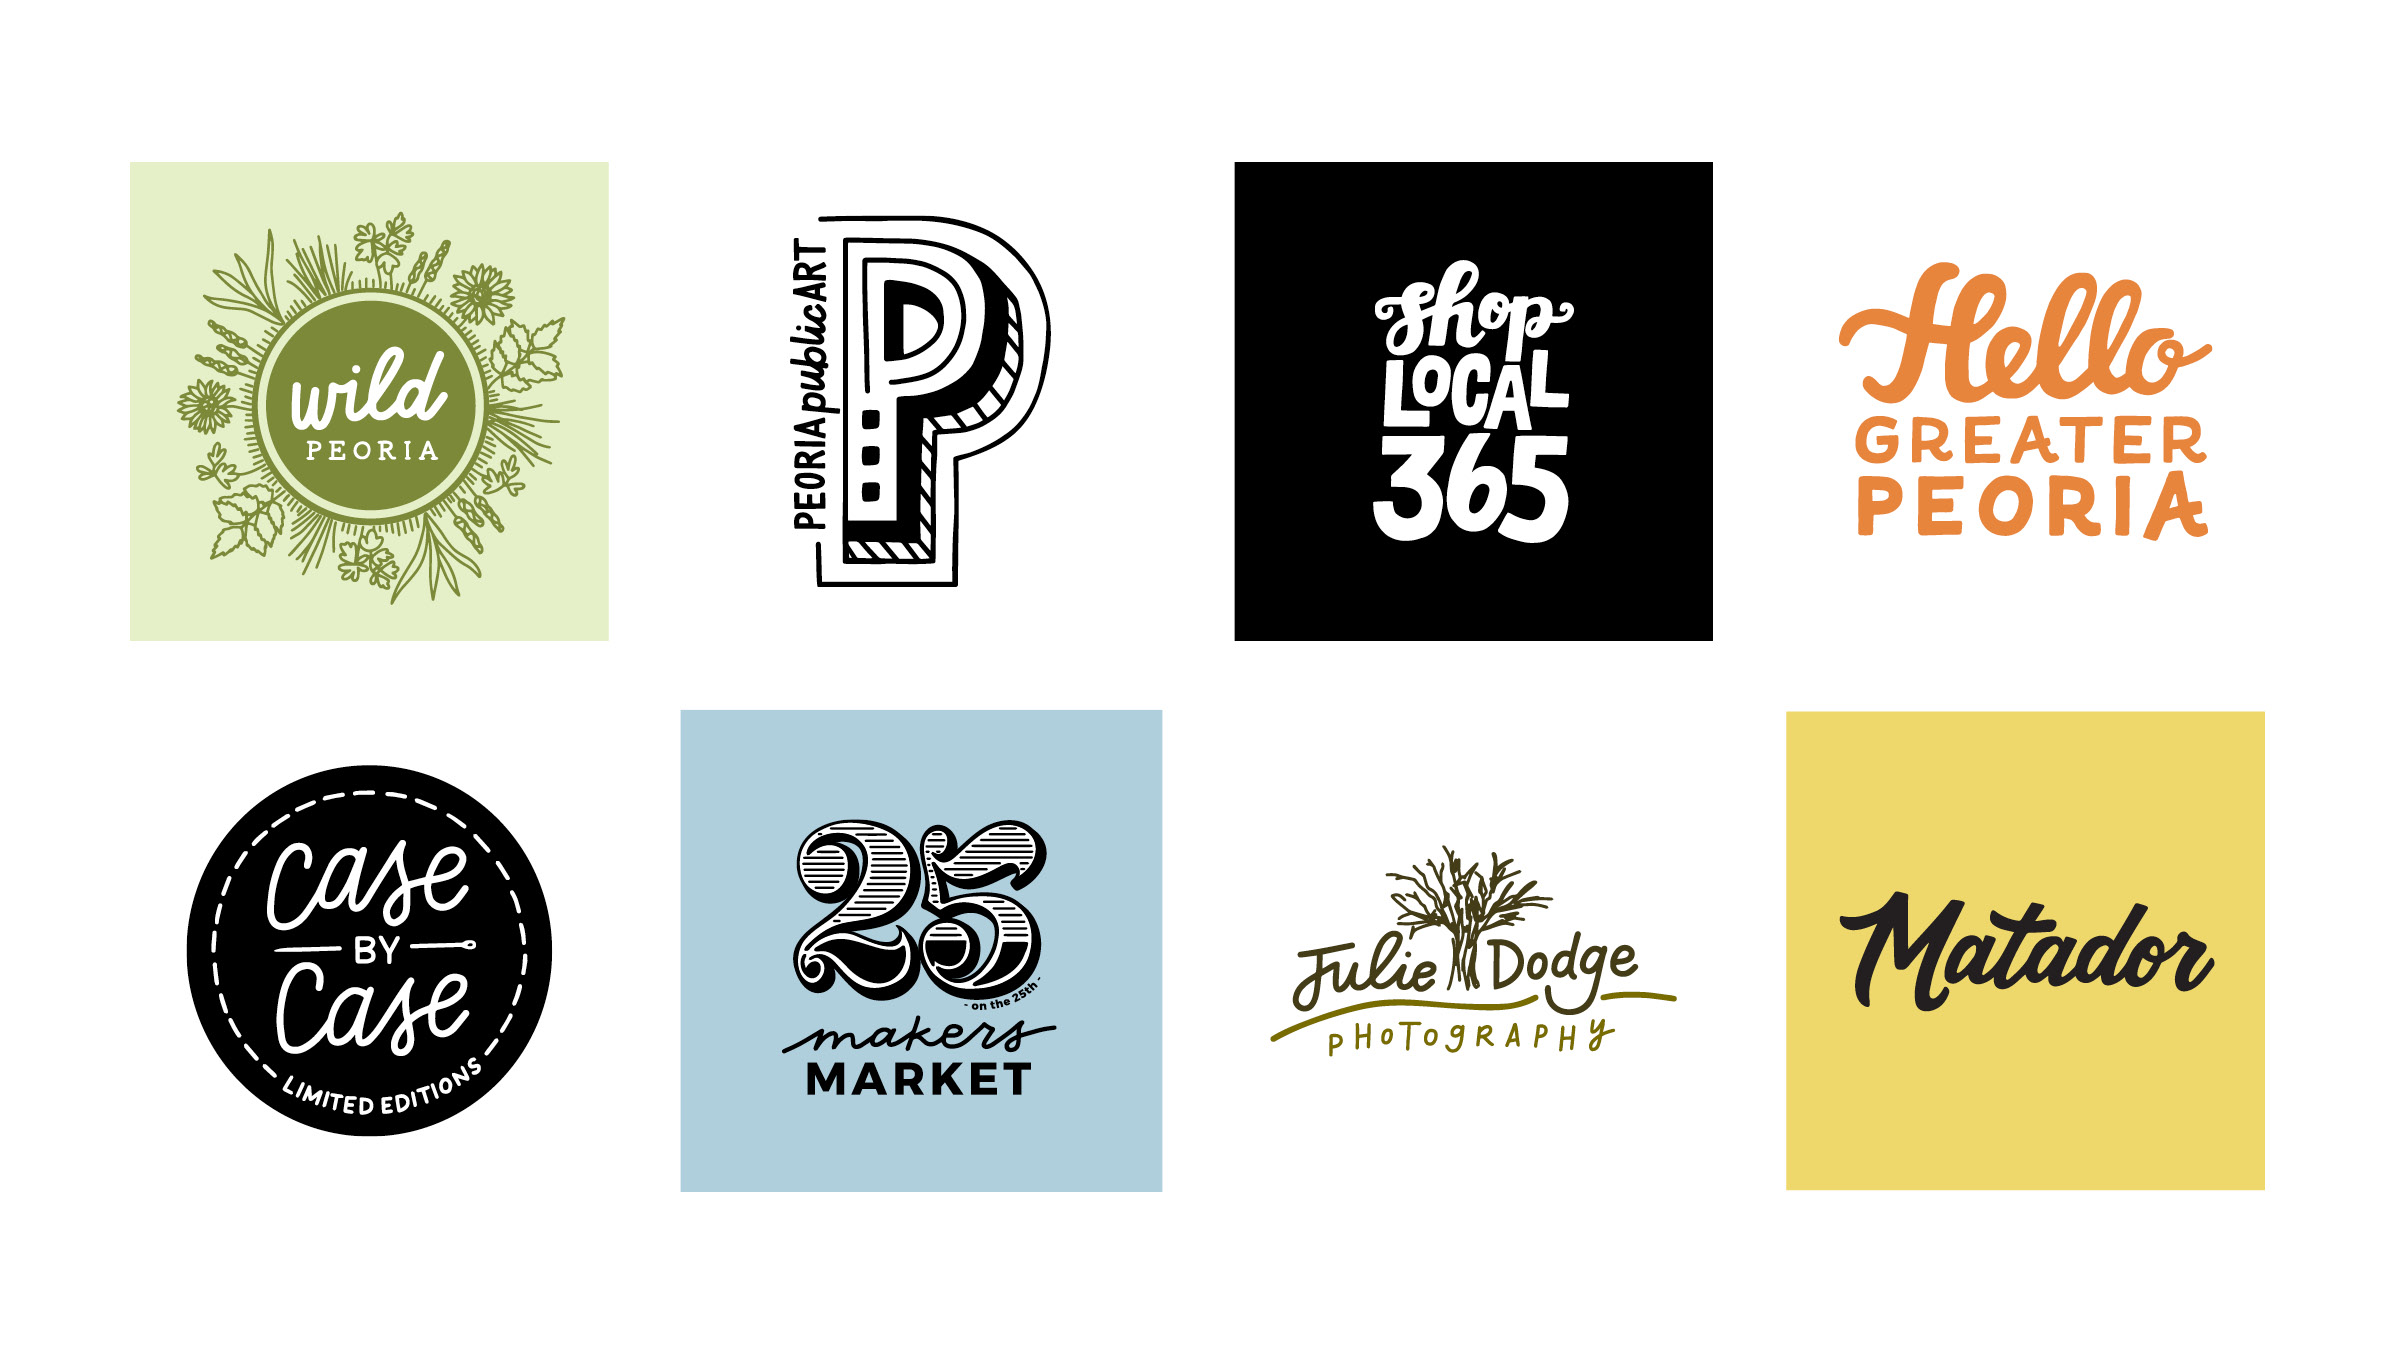 Get behind the people and ideas that you care most about. You'll see a common theme with these selected logos of community projects, local artists/makers/collectives. I'm so passionate about these ideas and want to see them succeed in a way that pushes my work further and fuels my creativity.